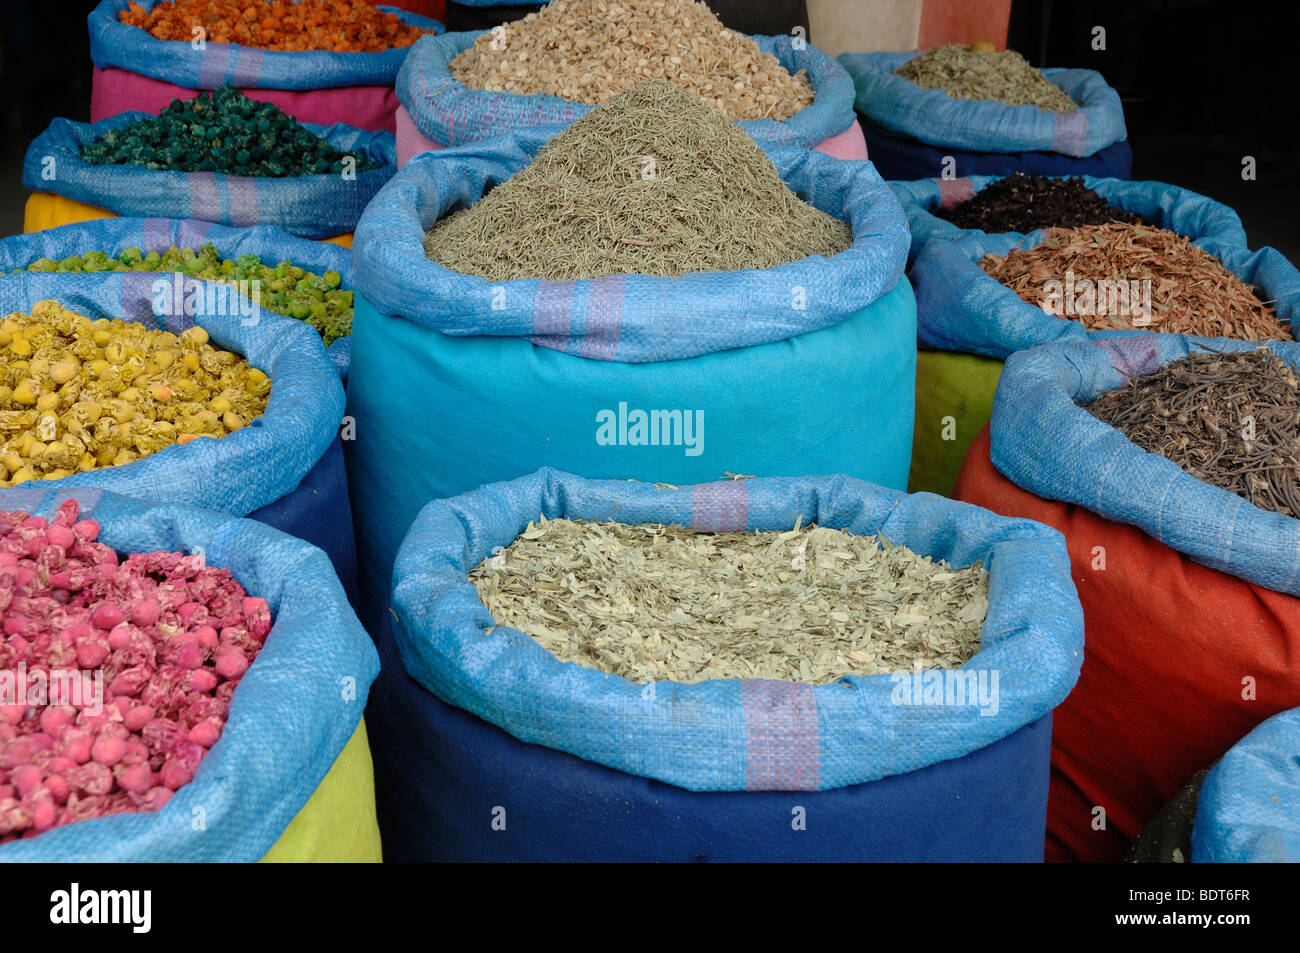 Moroccan Spices Stock Photos & Moroccan Spices Stock Images - Alamy